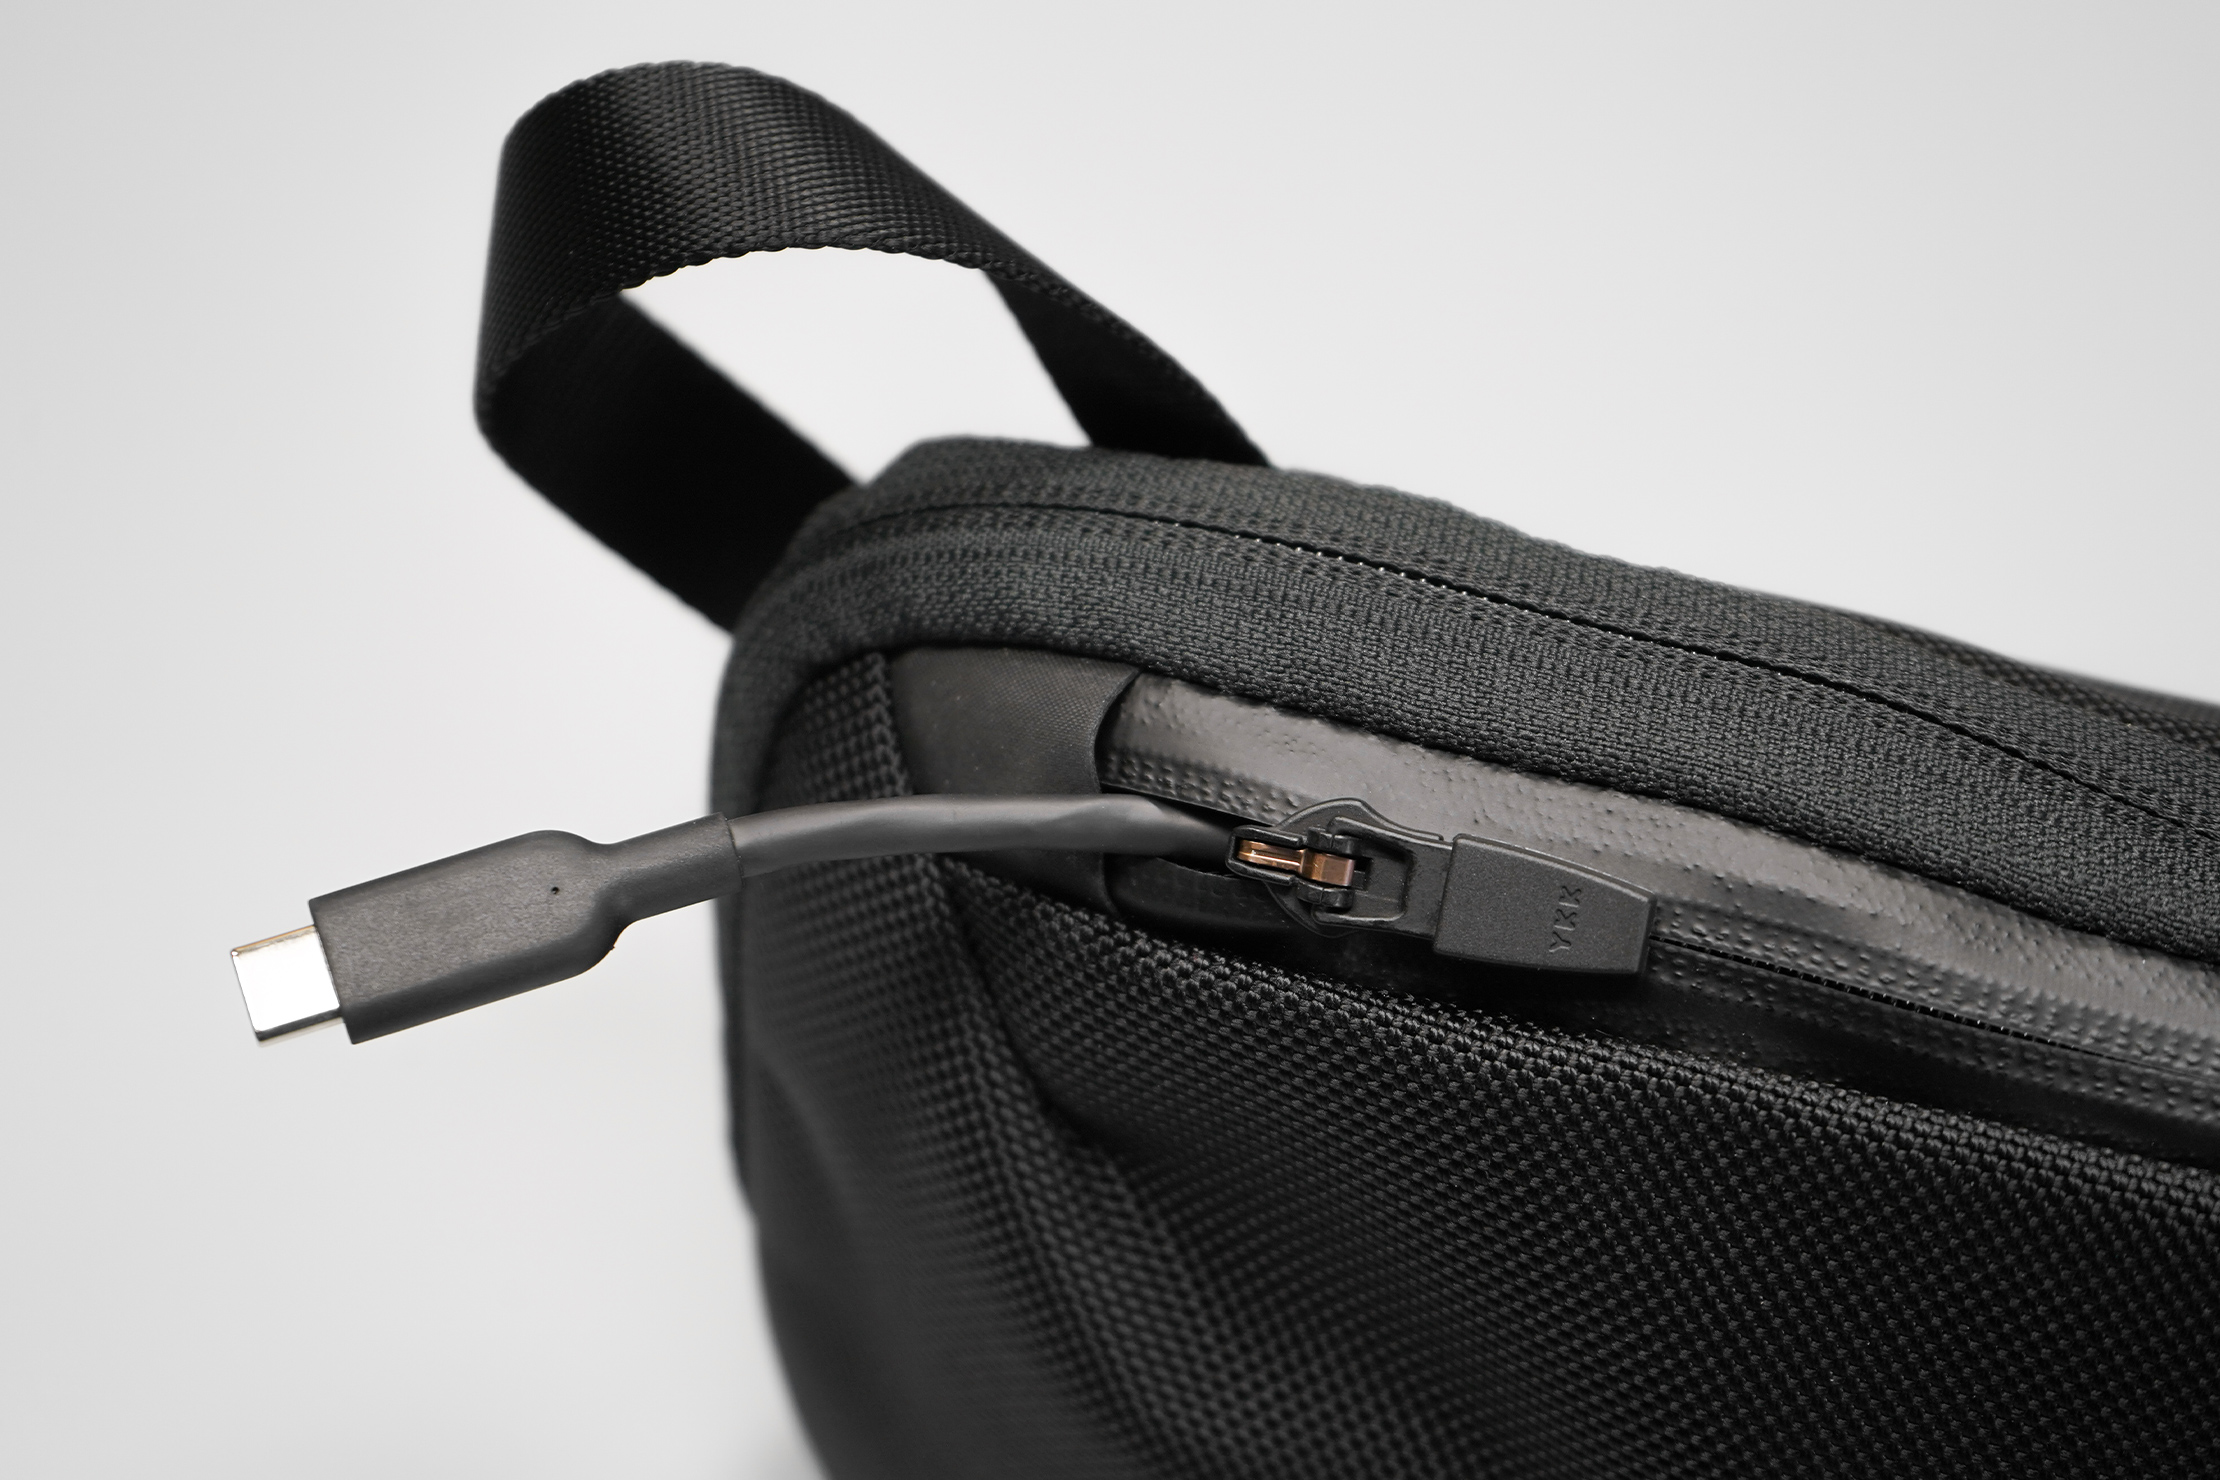 Aer Slim Pouch | Feel free to yank on your cable as long as the zipper tab's down